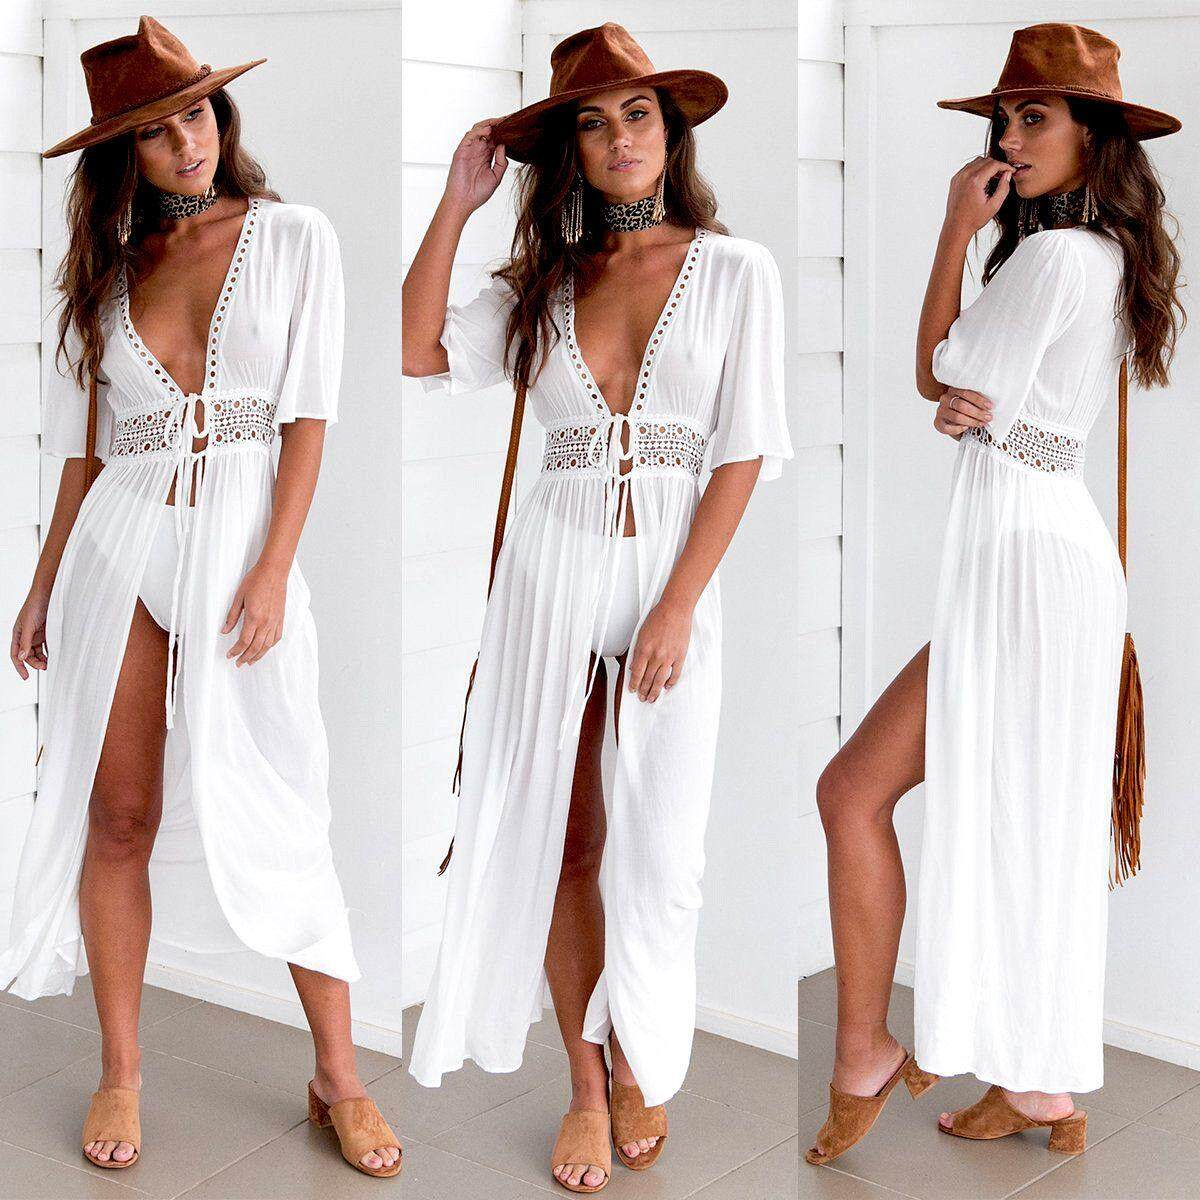 7790349f8ebff Women Beach Bikini Cover up Long Kaftan dress Summer Boho Maxi Dress  Swimwear